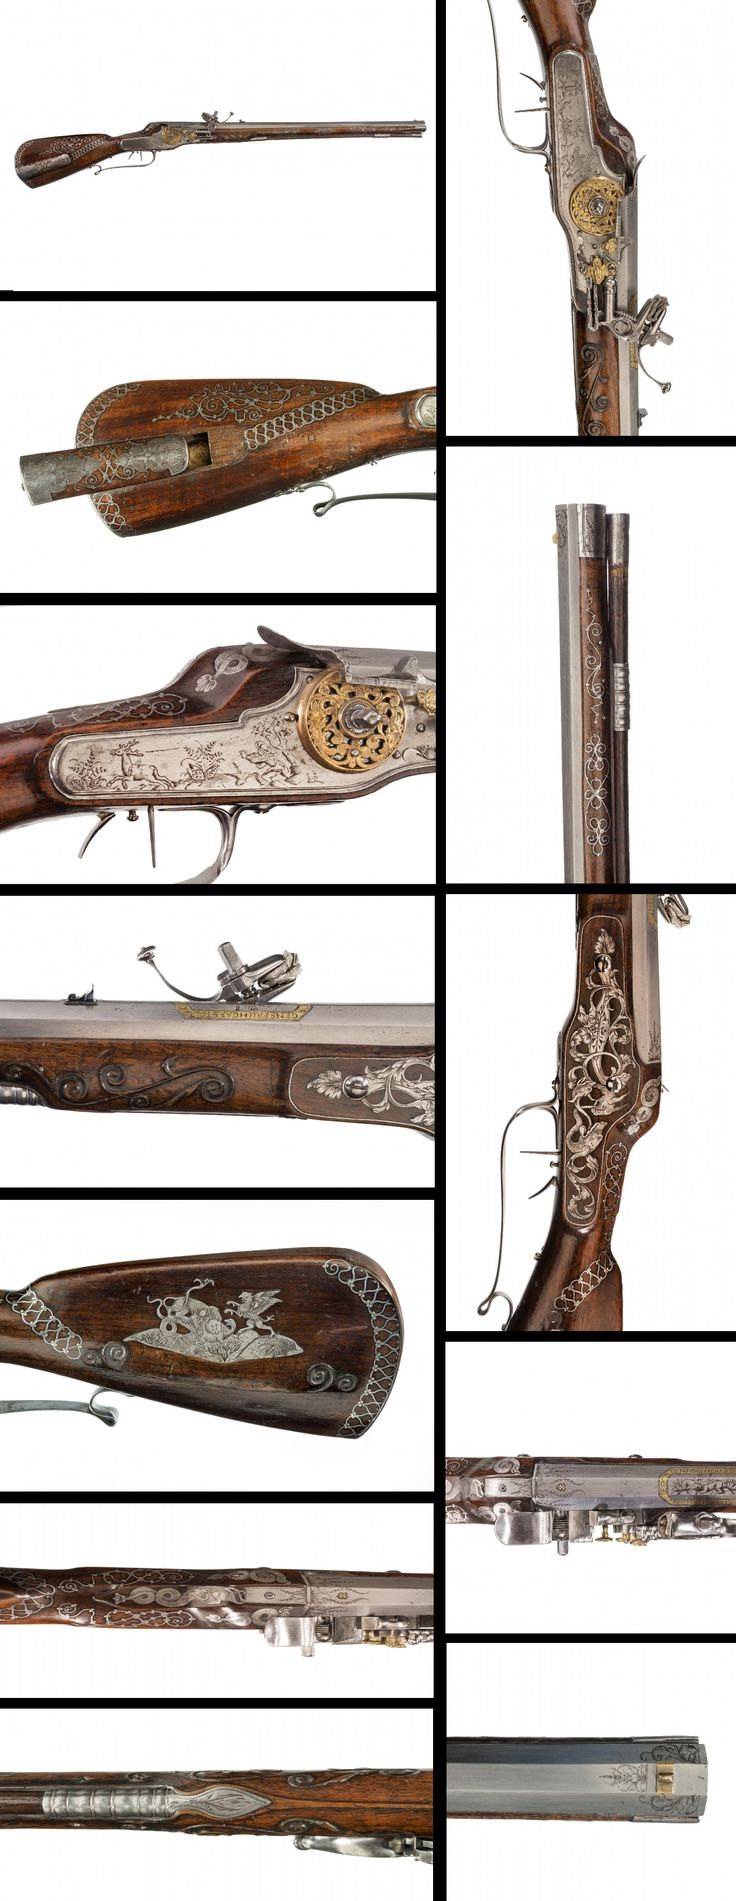 A GERMAN WHEEL-LOCK SPORTING RIFLE (MÜLLERBÜCHSE), THE STOCK INLAID WITH FINELY ENGRAVED IRON PLAQUES AND WIRE SCROLLWORK, CIRCA 1675.